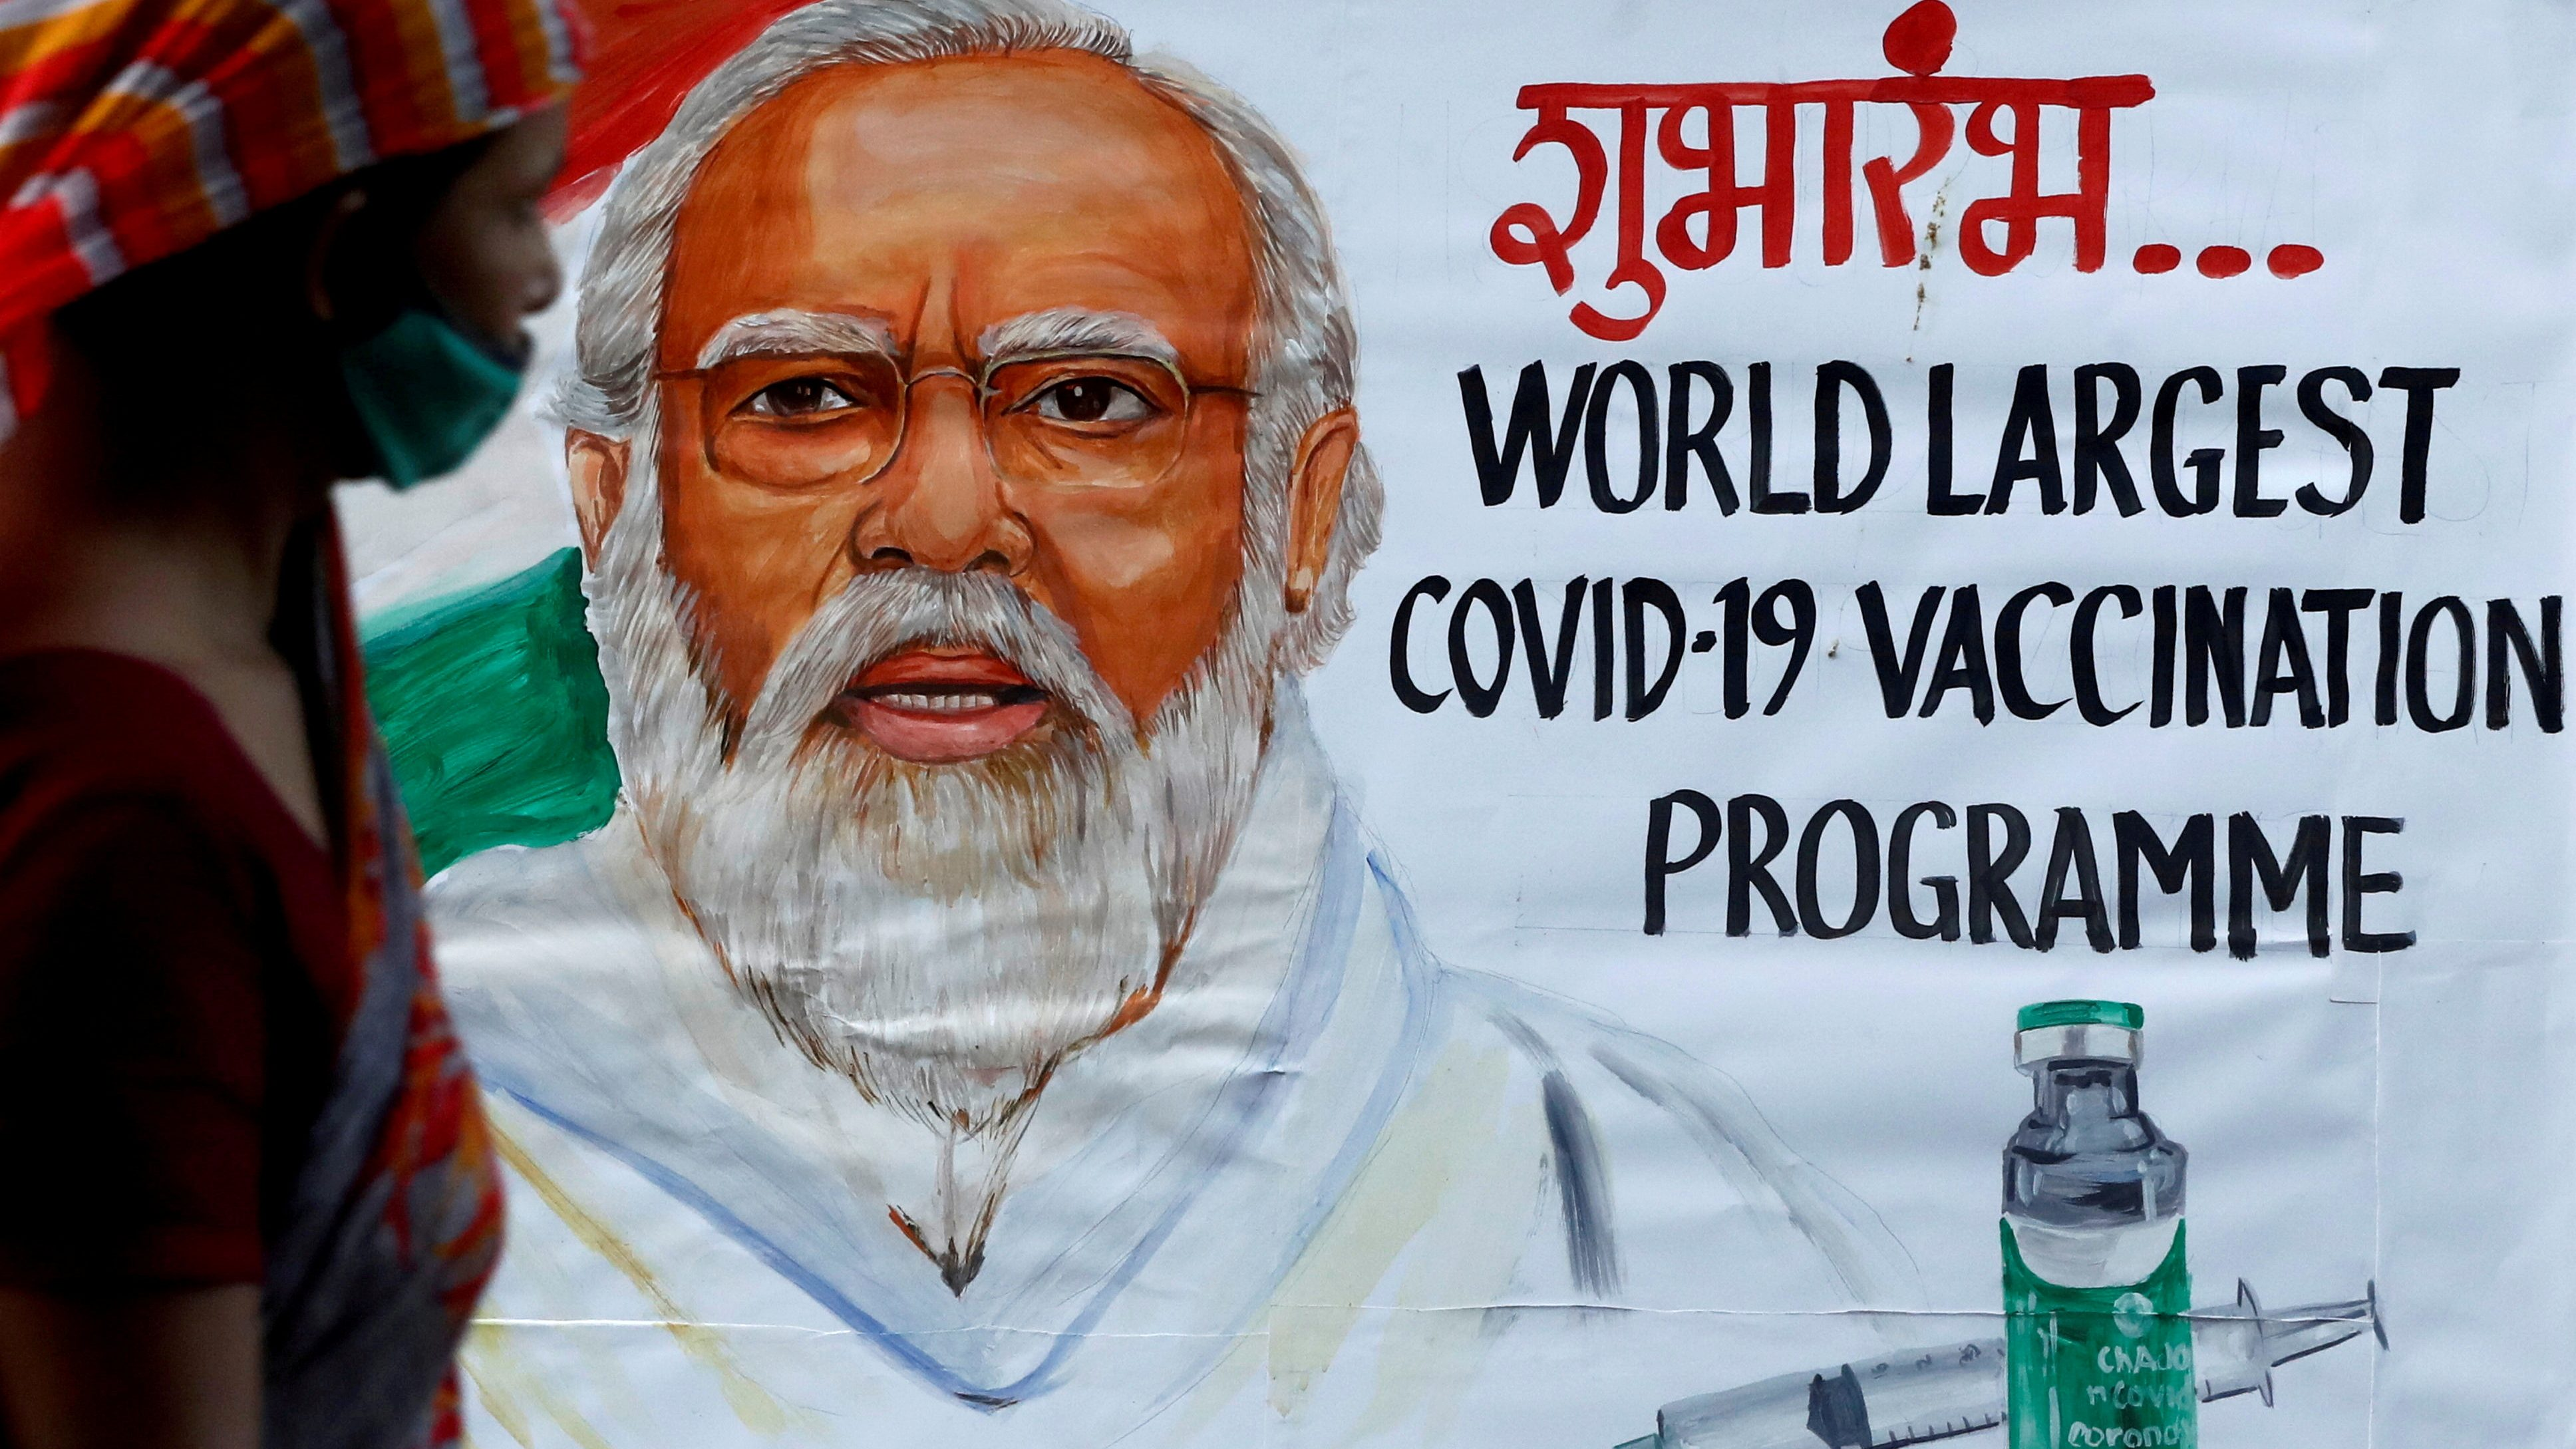 qz.com - Manavi Kapur - How many vaccines is India making? The government has many answers to one question